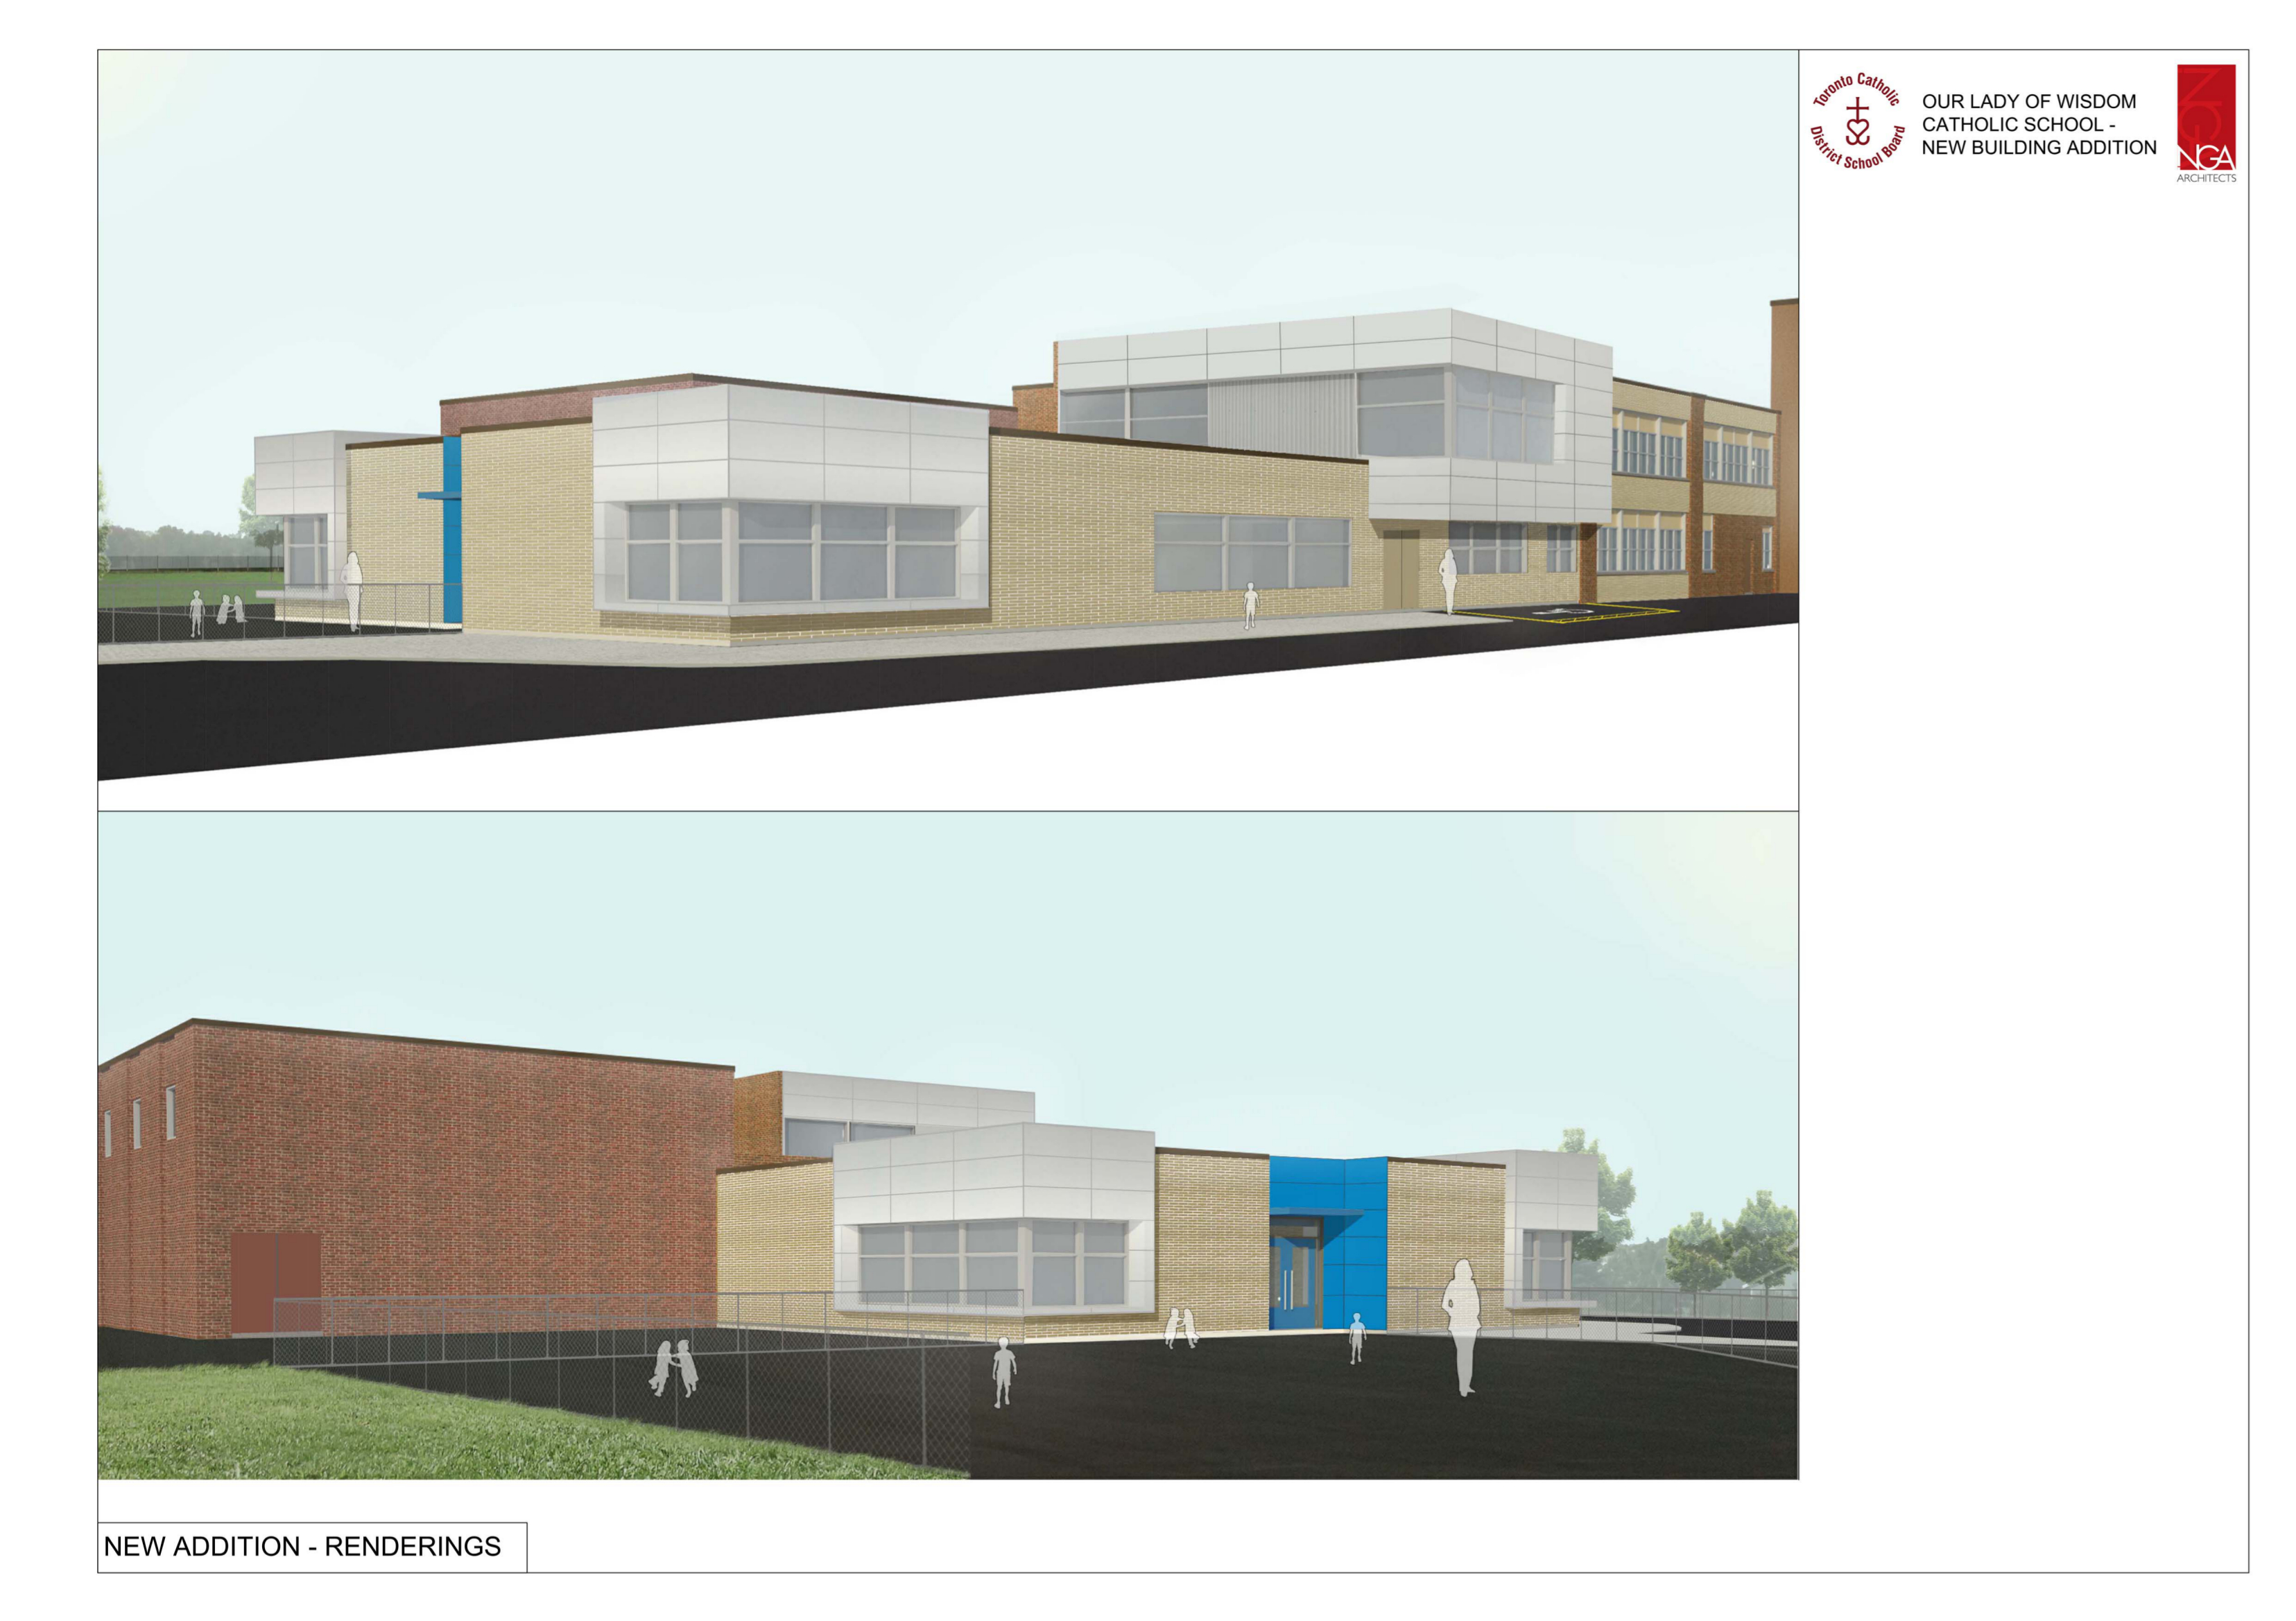 TCDSB - Our Lady of Wisdom - Presentation - Renderings.jpg